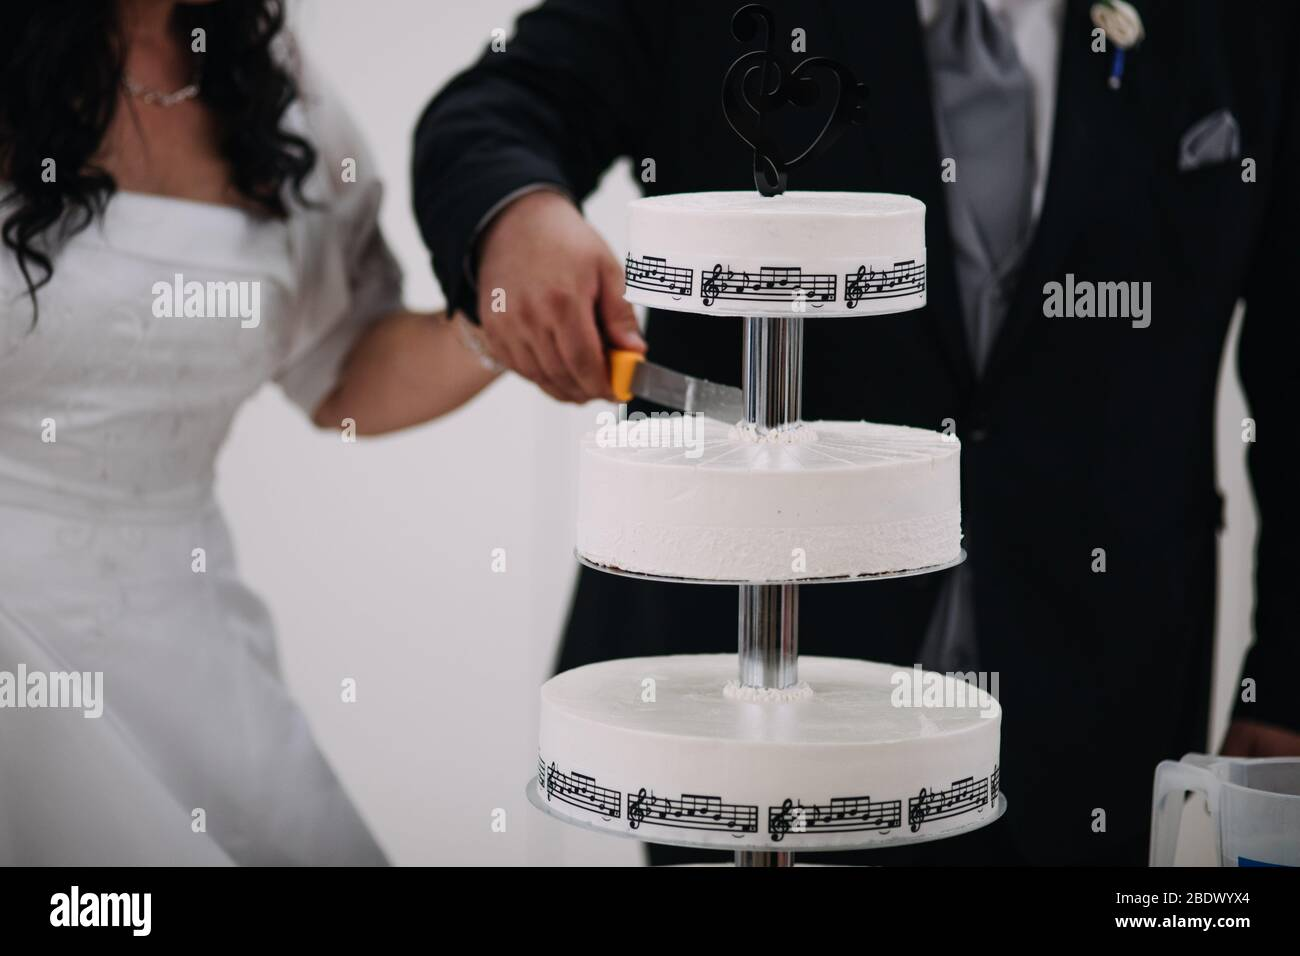 Elegant Wedding Cake Decorated With Music Symbols And Notes Bride And Groom On Background Wedding Ceremony Beautiful Pie On The Table Brides Cut C Stock Photo Alamy